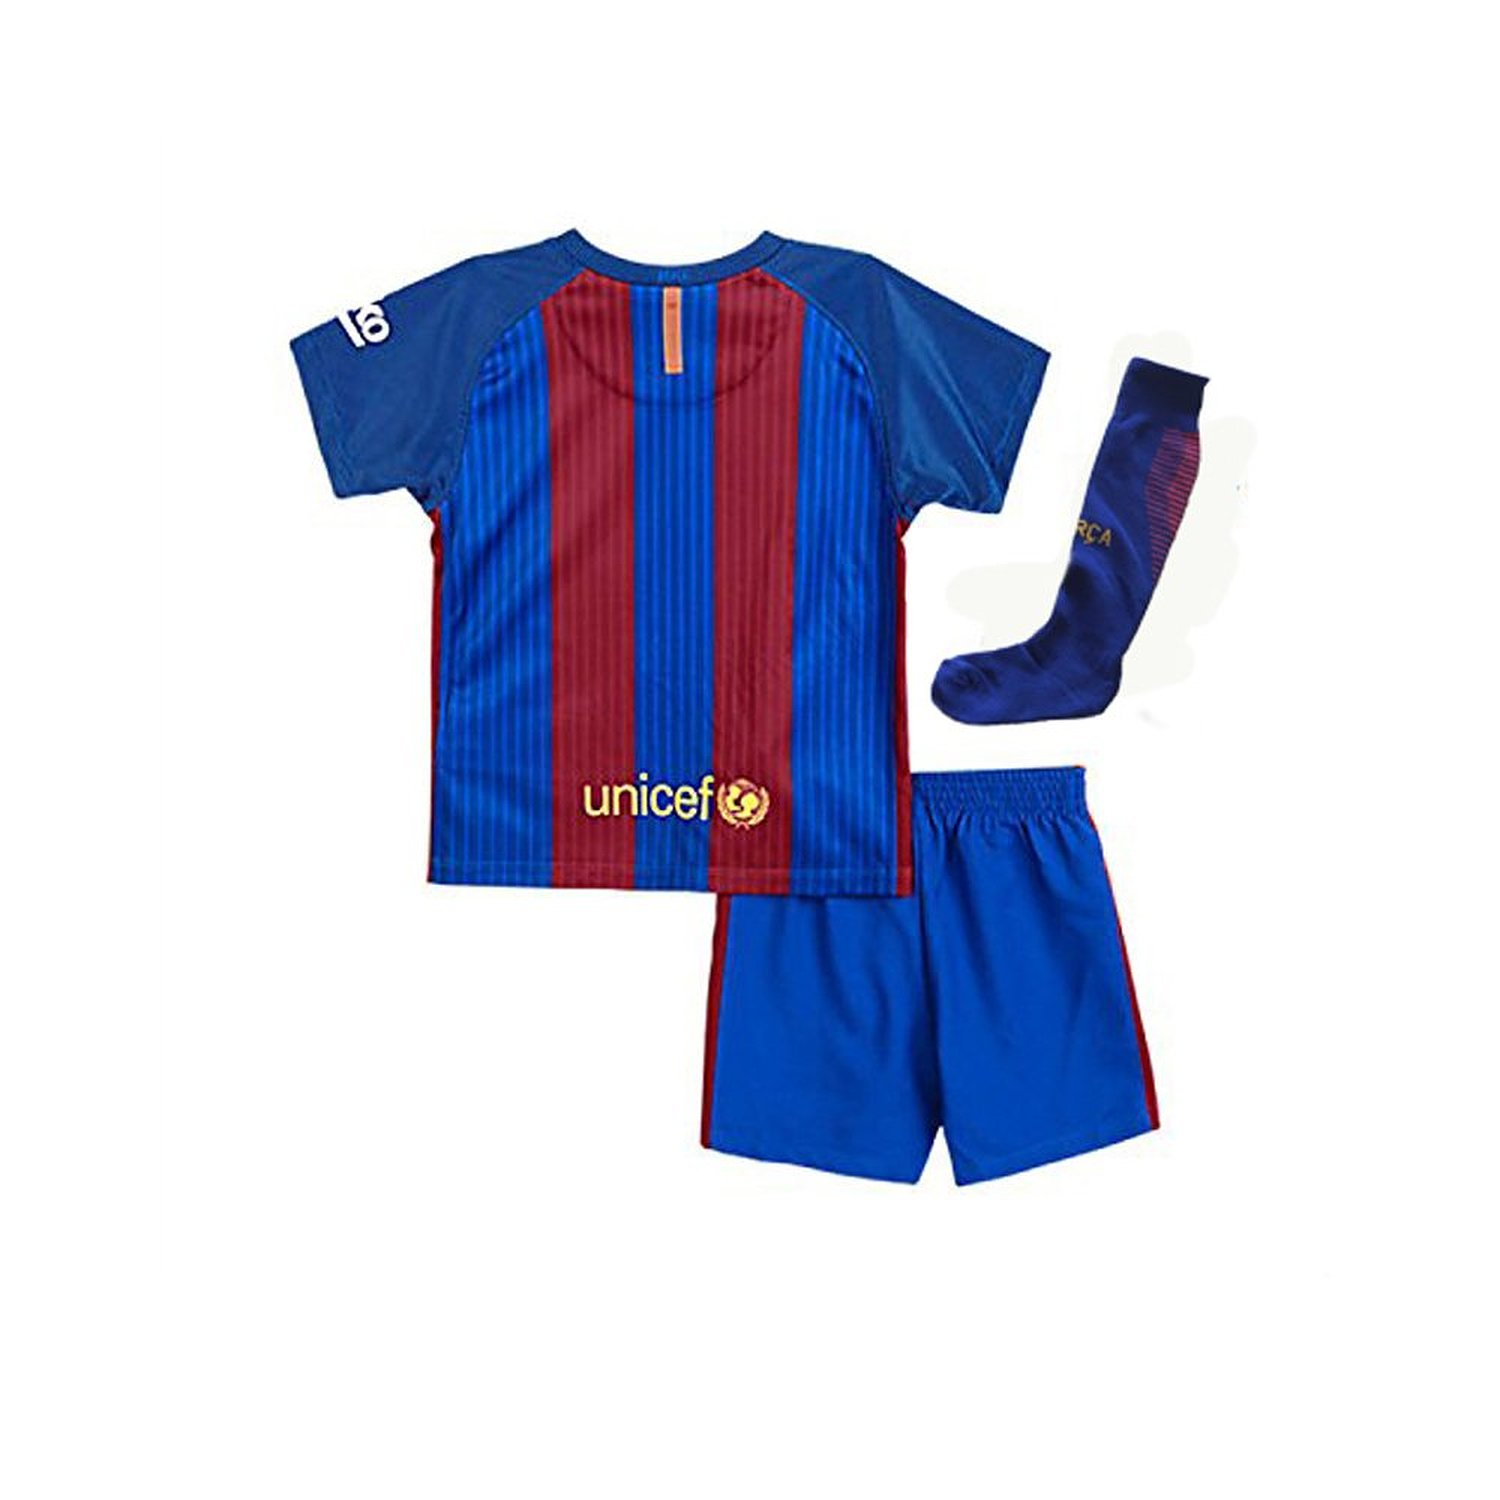 541ab9caf Get Quotations · Nino Top 2017 Barcelona Messi No.10 Youth Home Kit  Shirt+Short+Socks